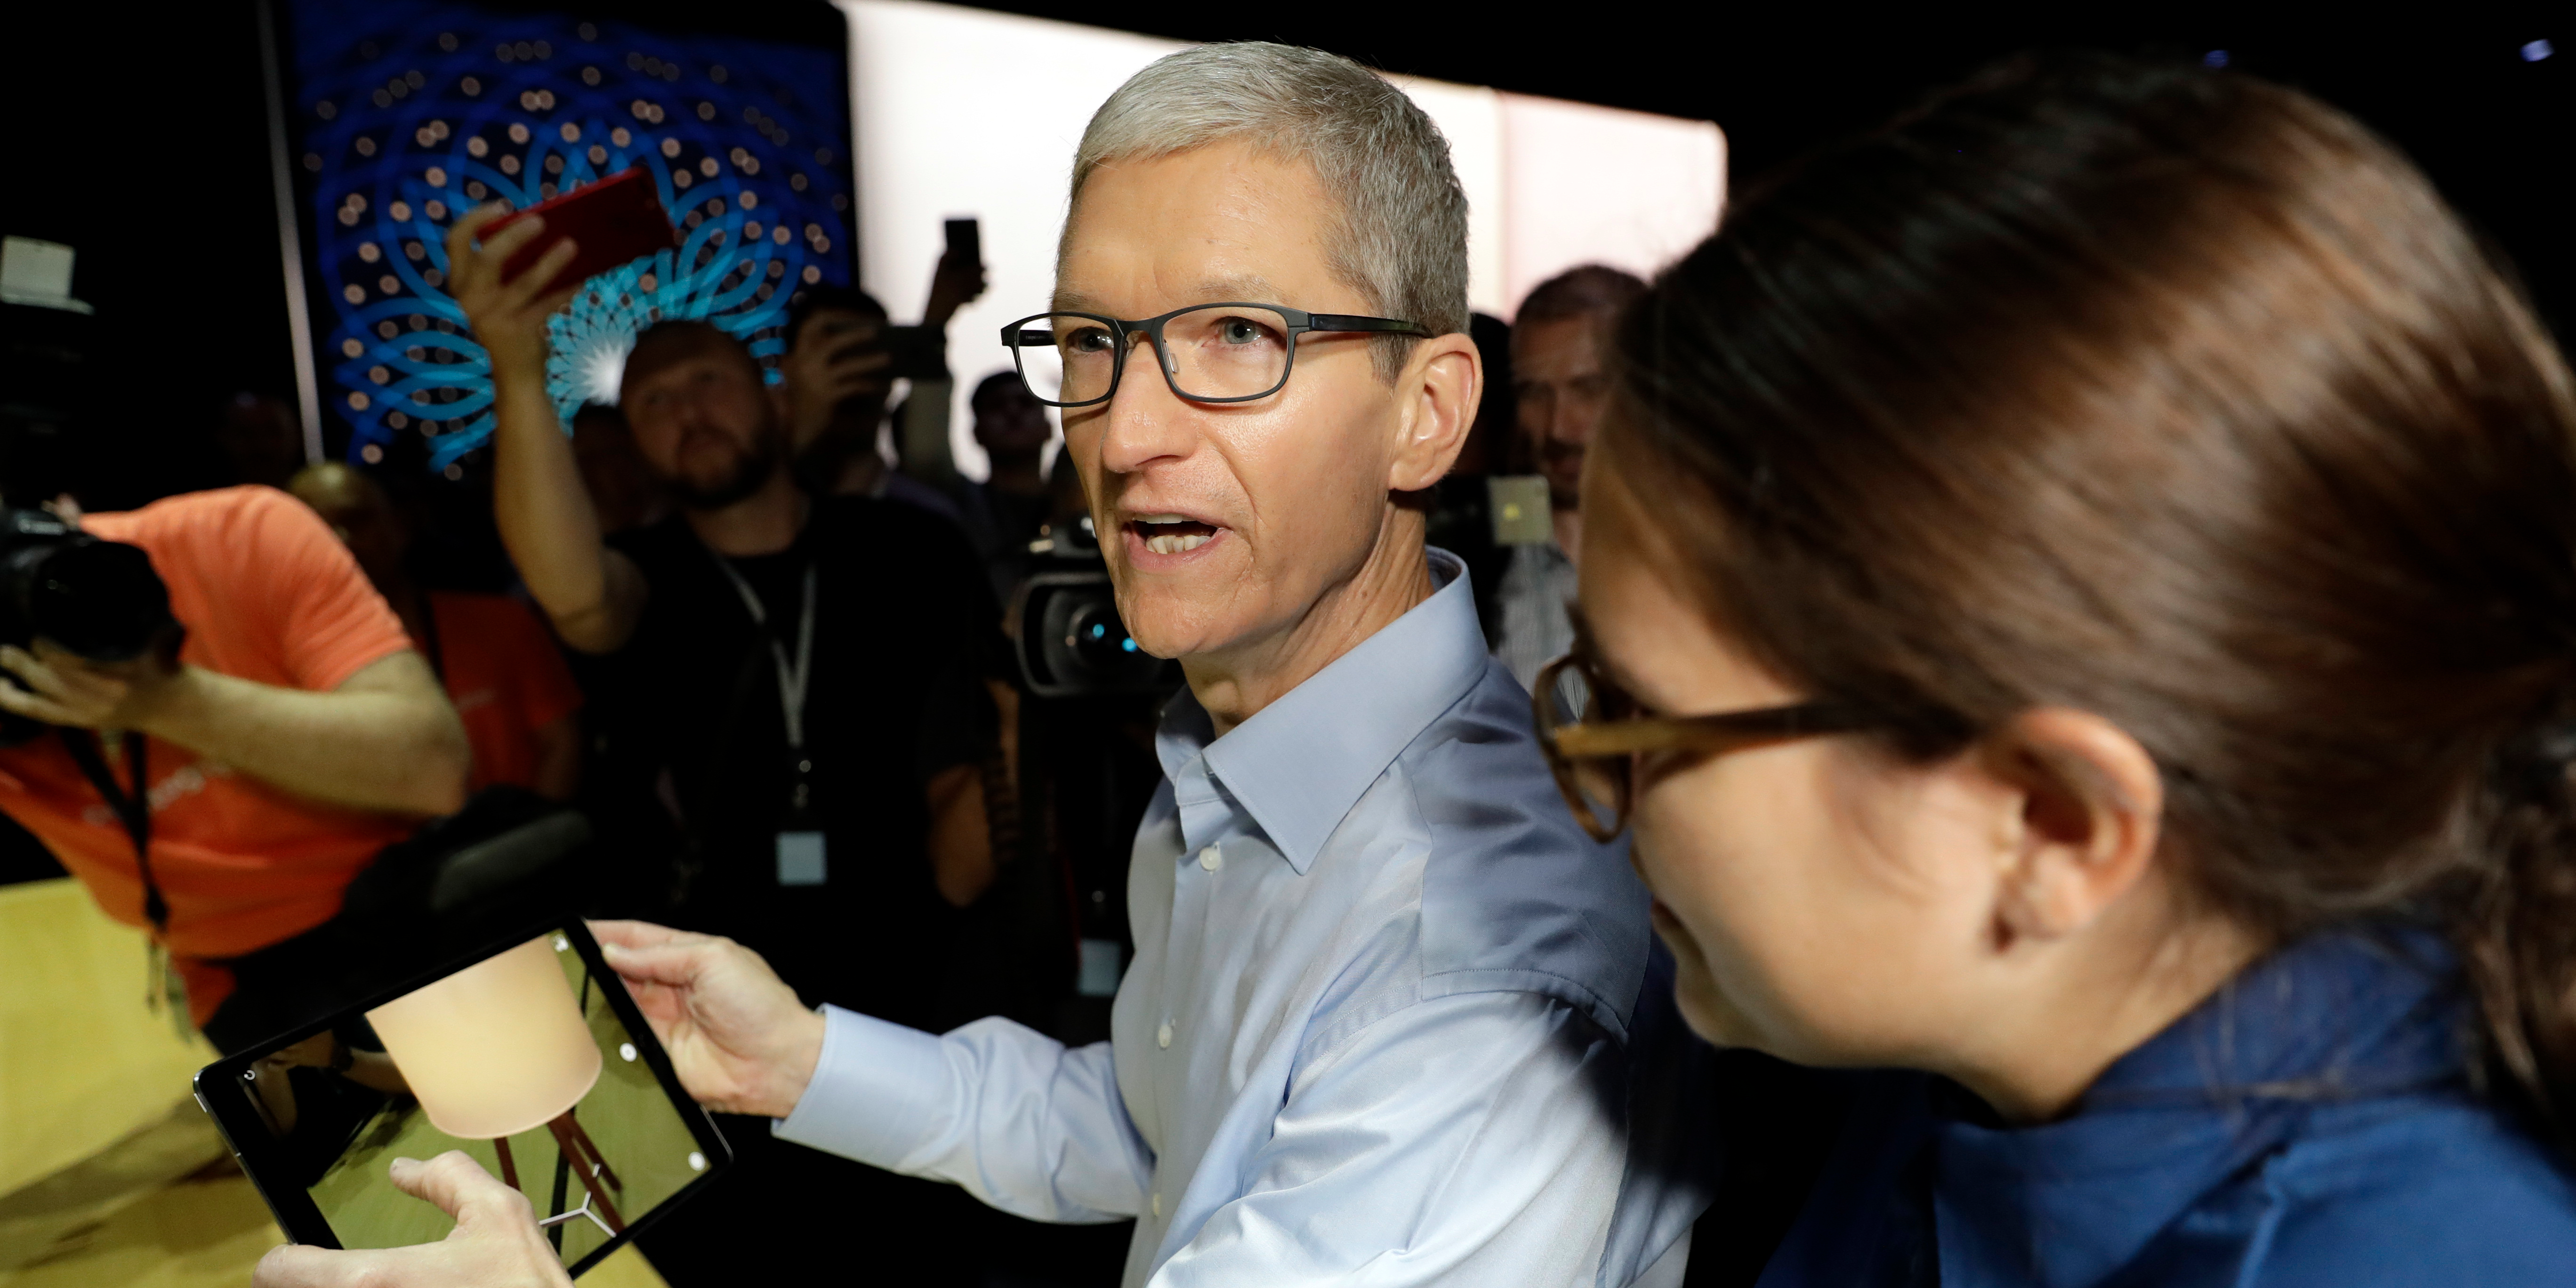 Apple is holding an event on March 27 — and it looks like new iPads are coming (AAPL)